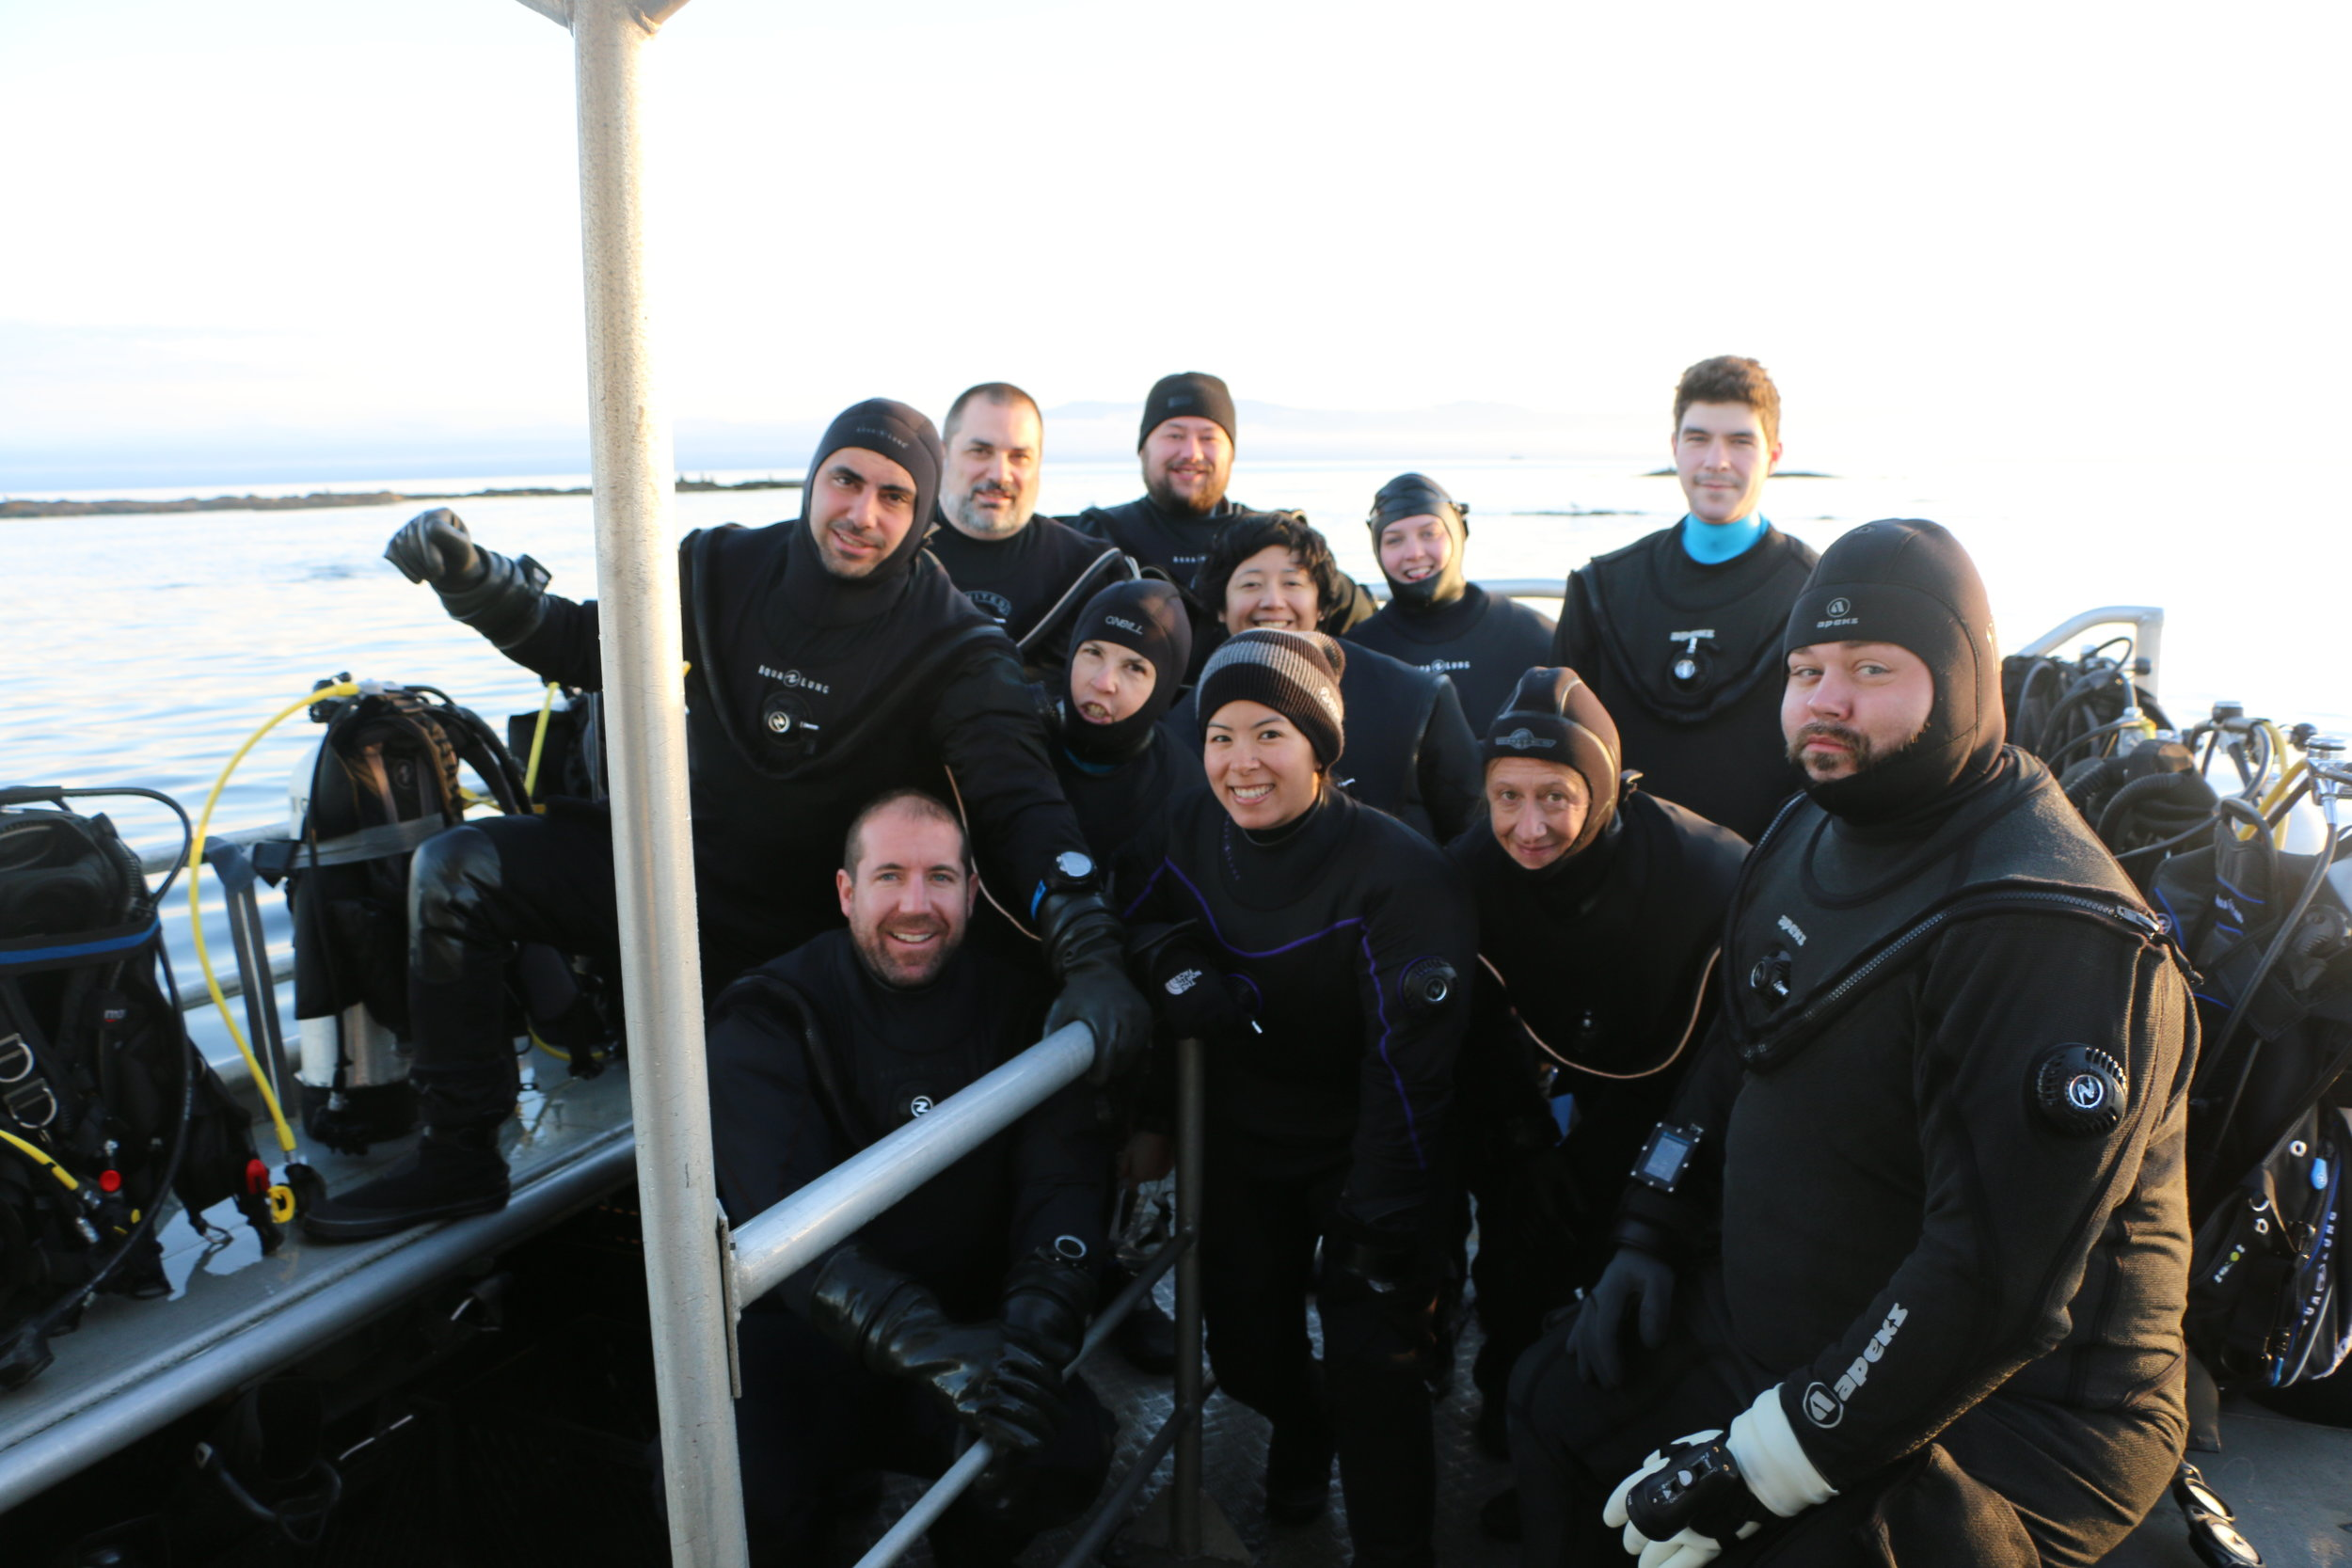 Post-Dive Group Photo